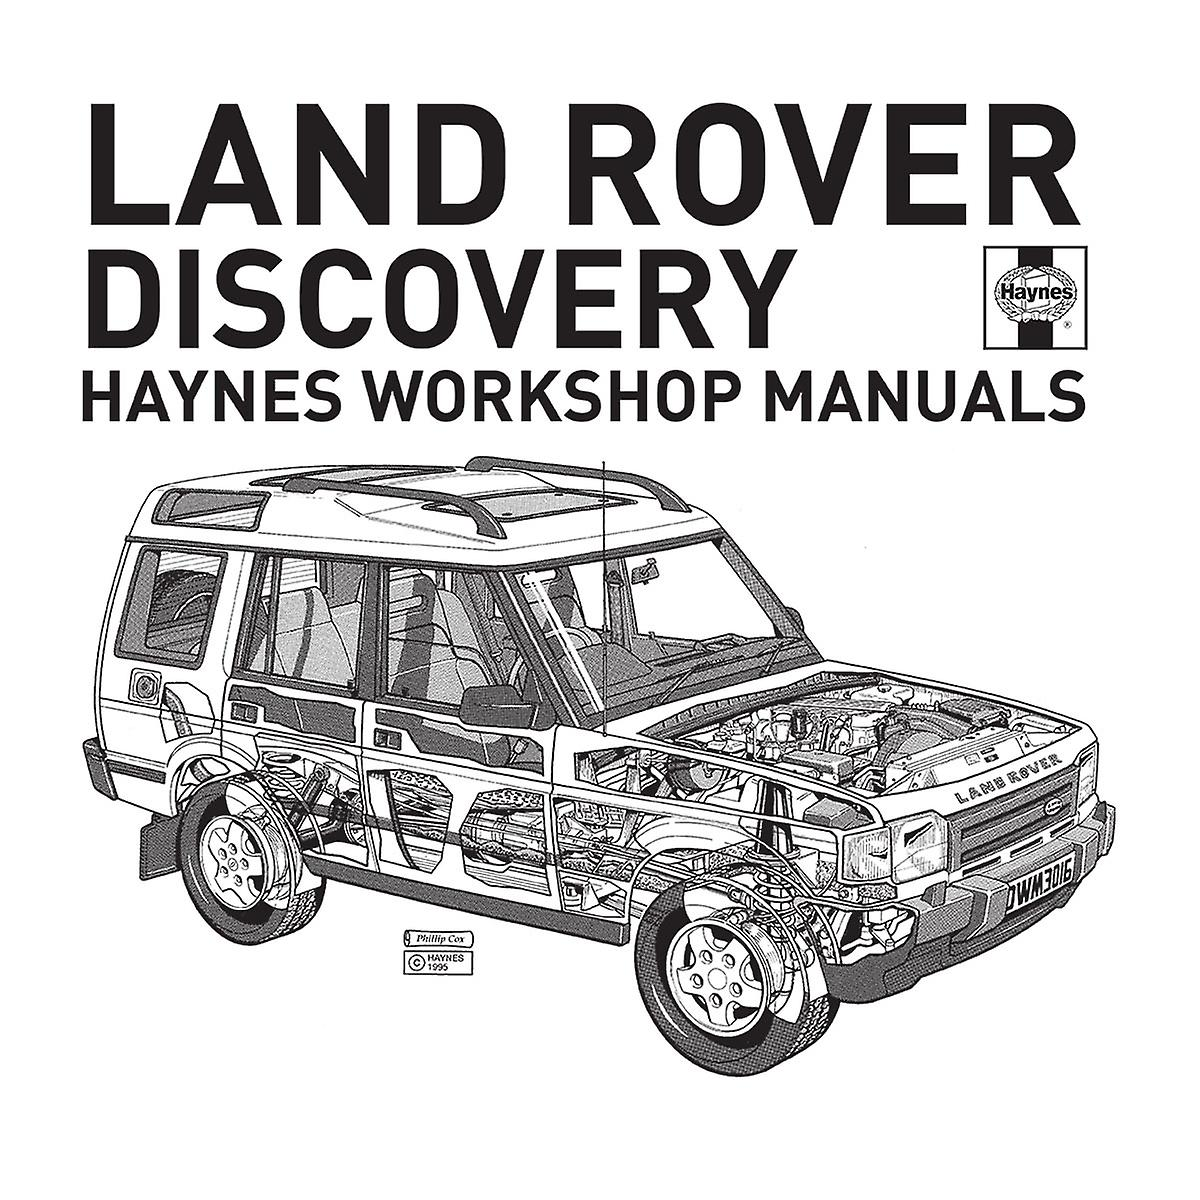 Haynes Workshop Manual 3016 Land Rover Discovery schwarz